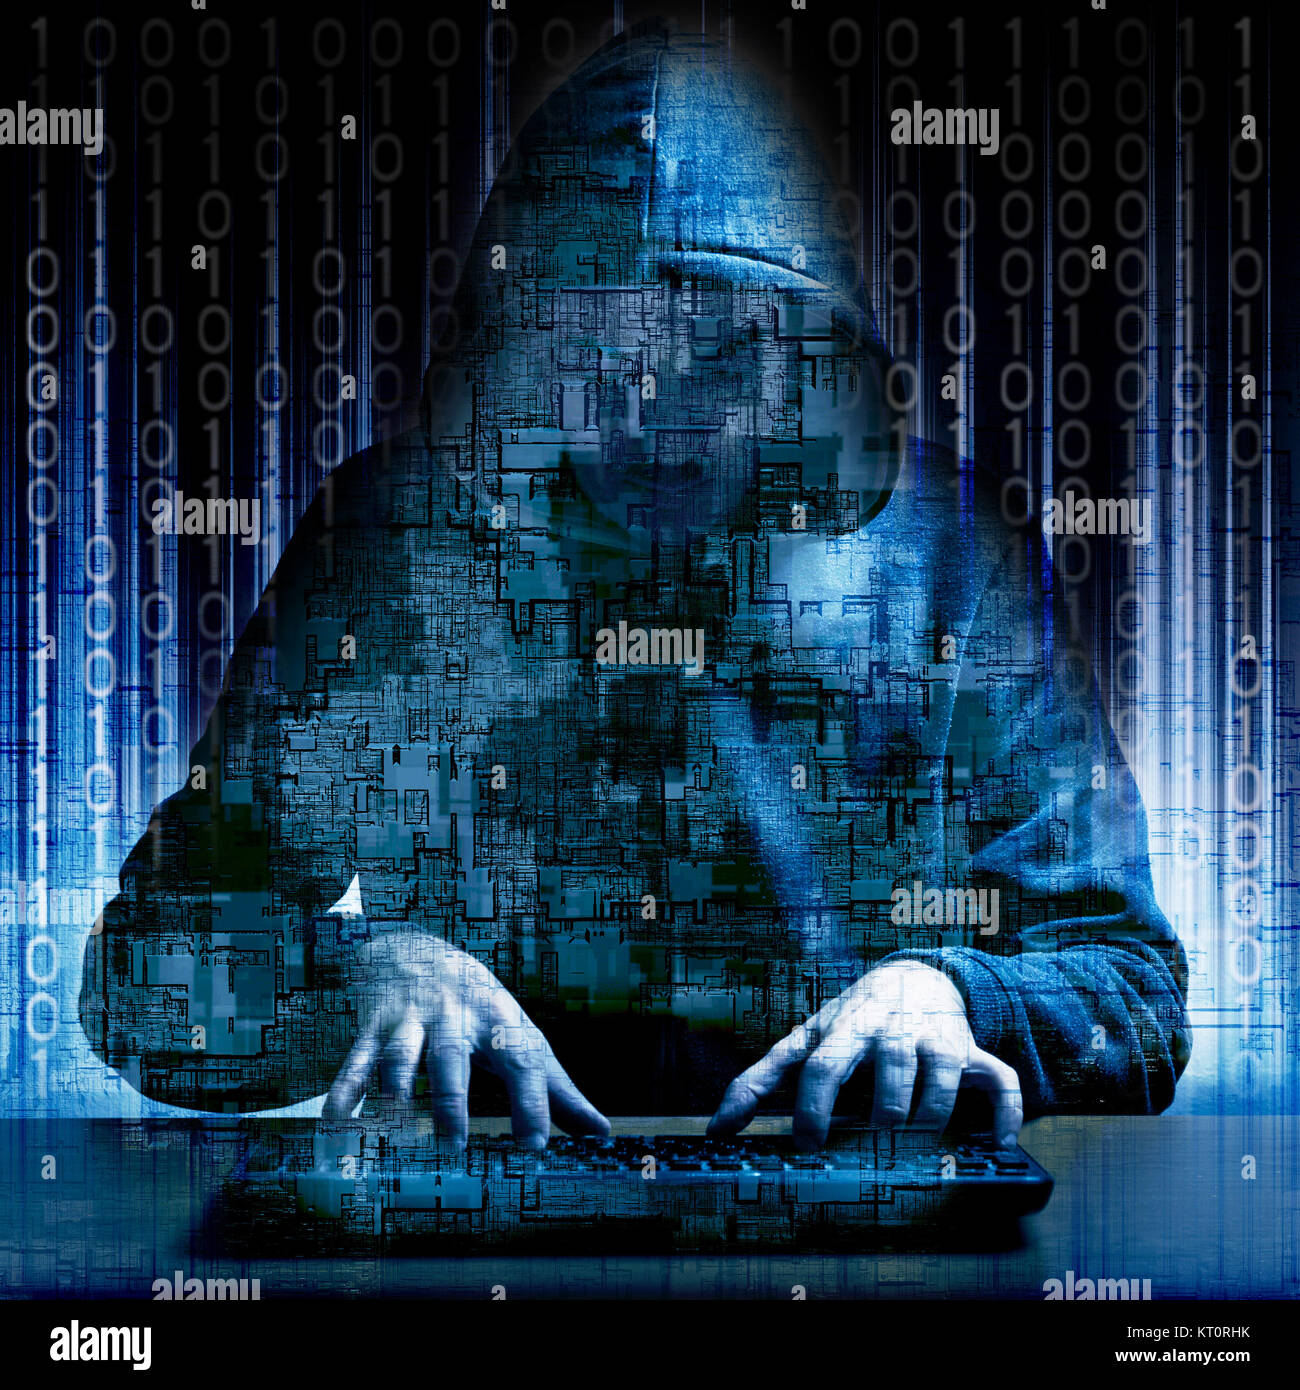 Hacker typing code on a keyboard, cybercrime and dark web concept - Stock Image